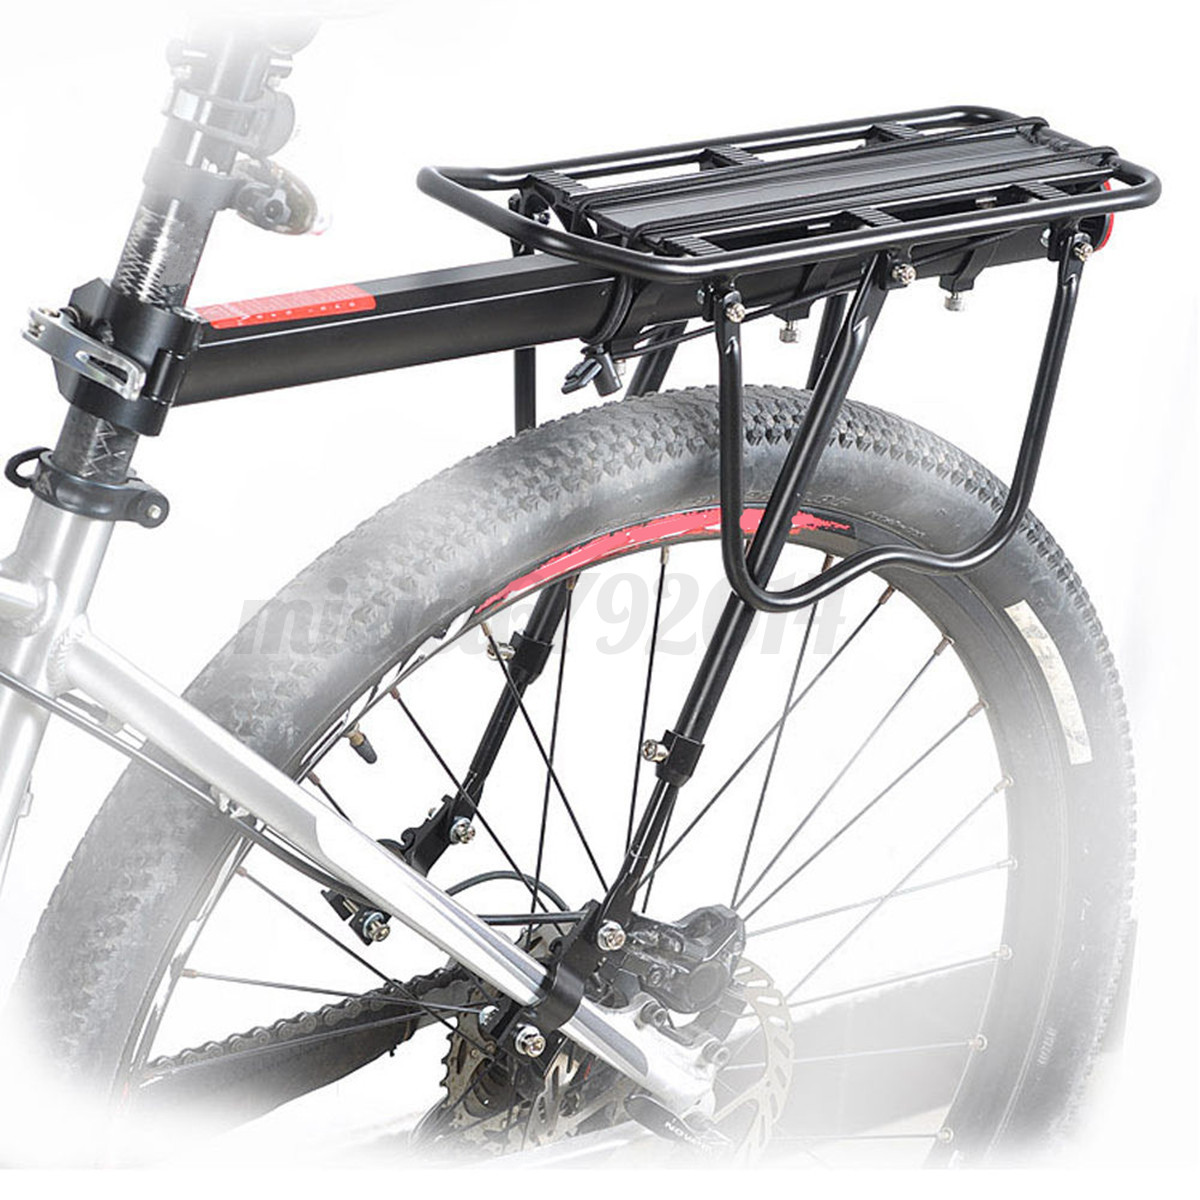 Bicycle Bike Alloy Rear Rack Pannier Carry Carrier ...